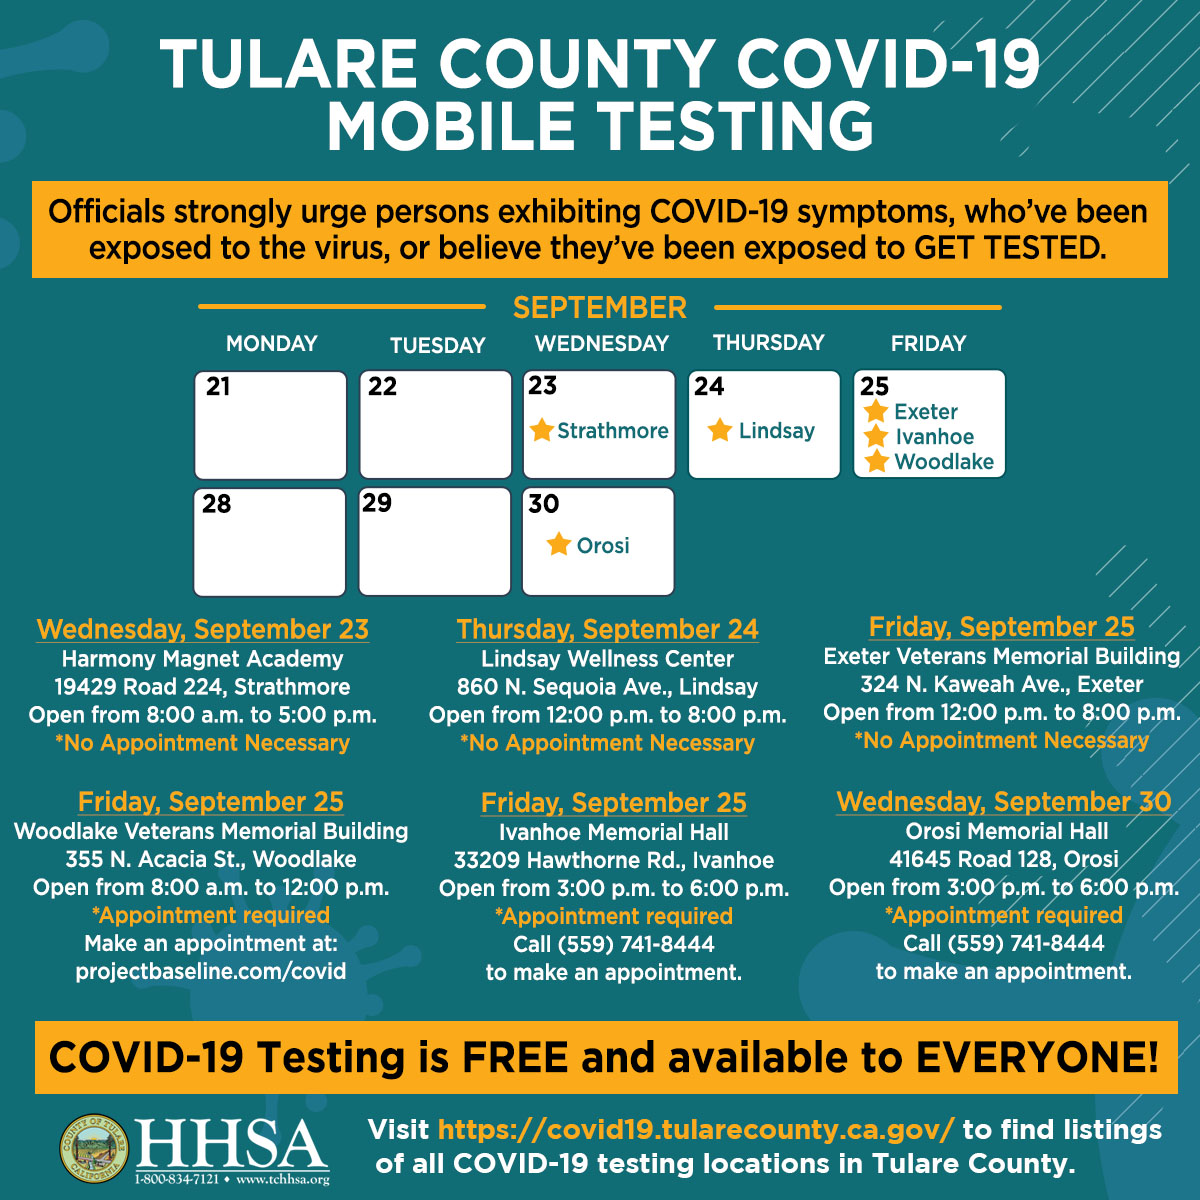 Pop-up COVID-19 Testing in Tulare County  Officials urge anyone exhibiting COVID-19 symptoms, or who have been exposed to the virus, or believe they have been exposed, or an essential worker, to get tested.   Testing is FREE & open to everyone. GET TESTED Tulare County!